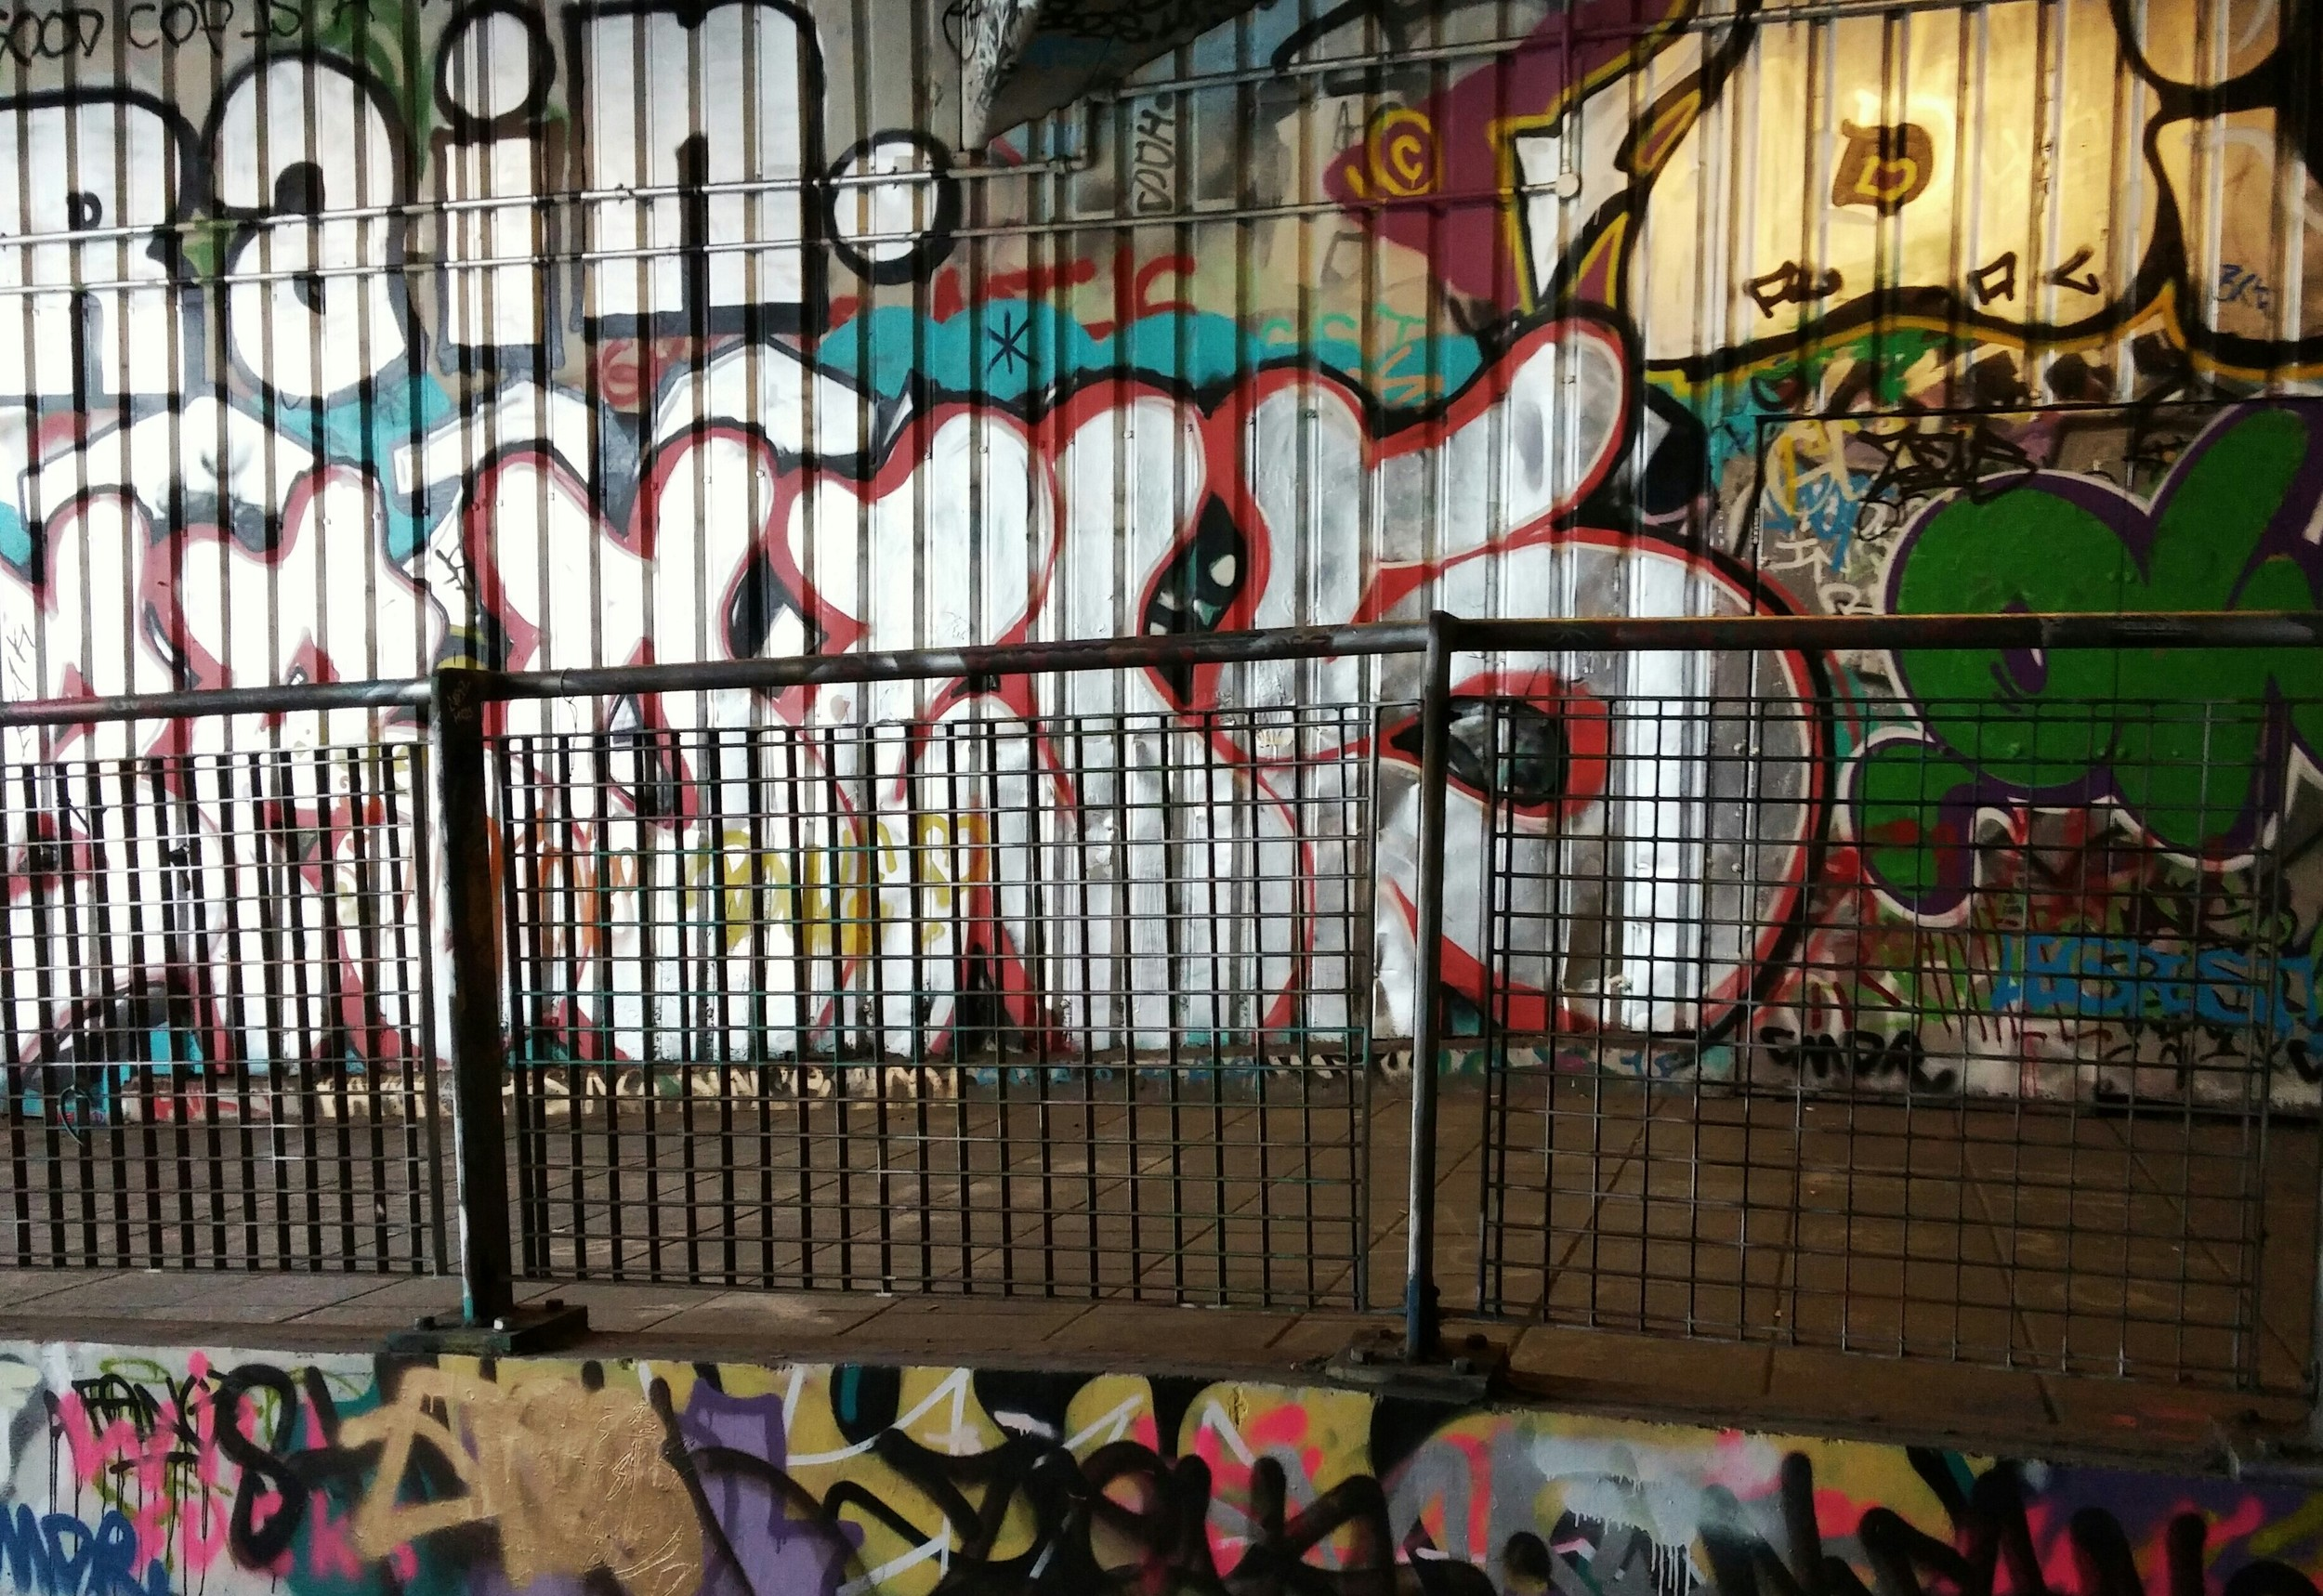 Our tour guide took us to the underground subculture of London. The authorities have allowed graffiti in this single tunnel, just behind the London Eye. Blooming artists repaint the entire tunnel at least once a week.